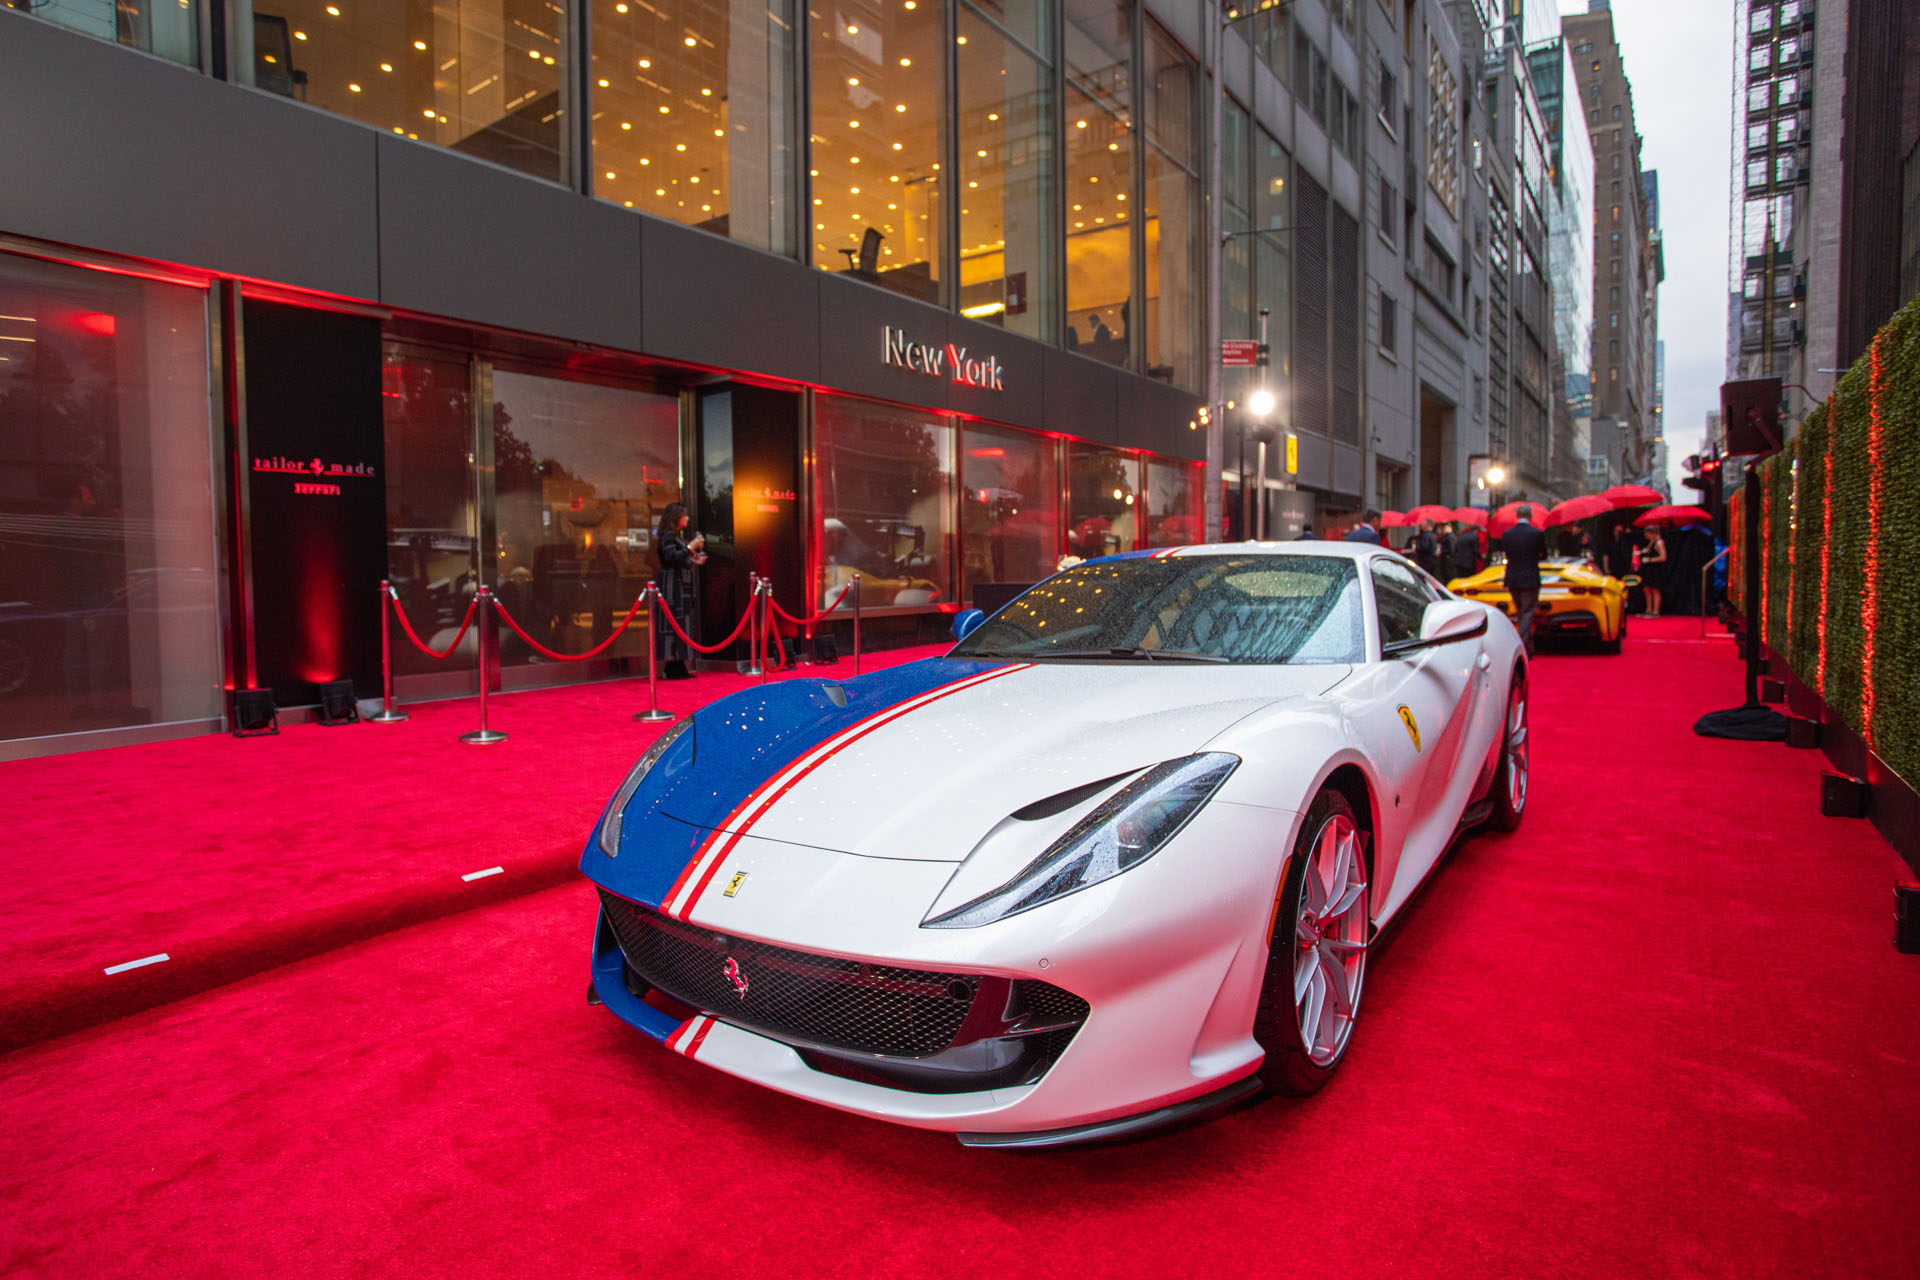 Car on the red carpet at the Opening of Ferrari's Tailor Made Center iun NYC